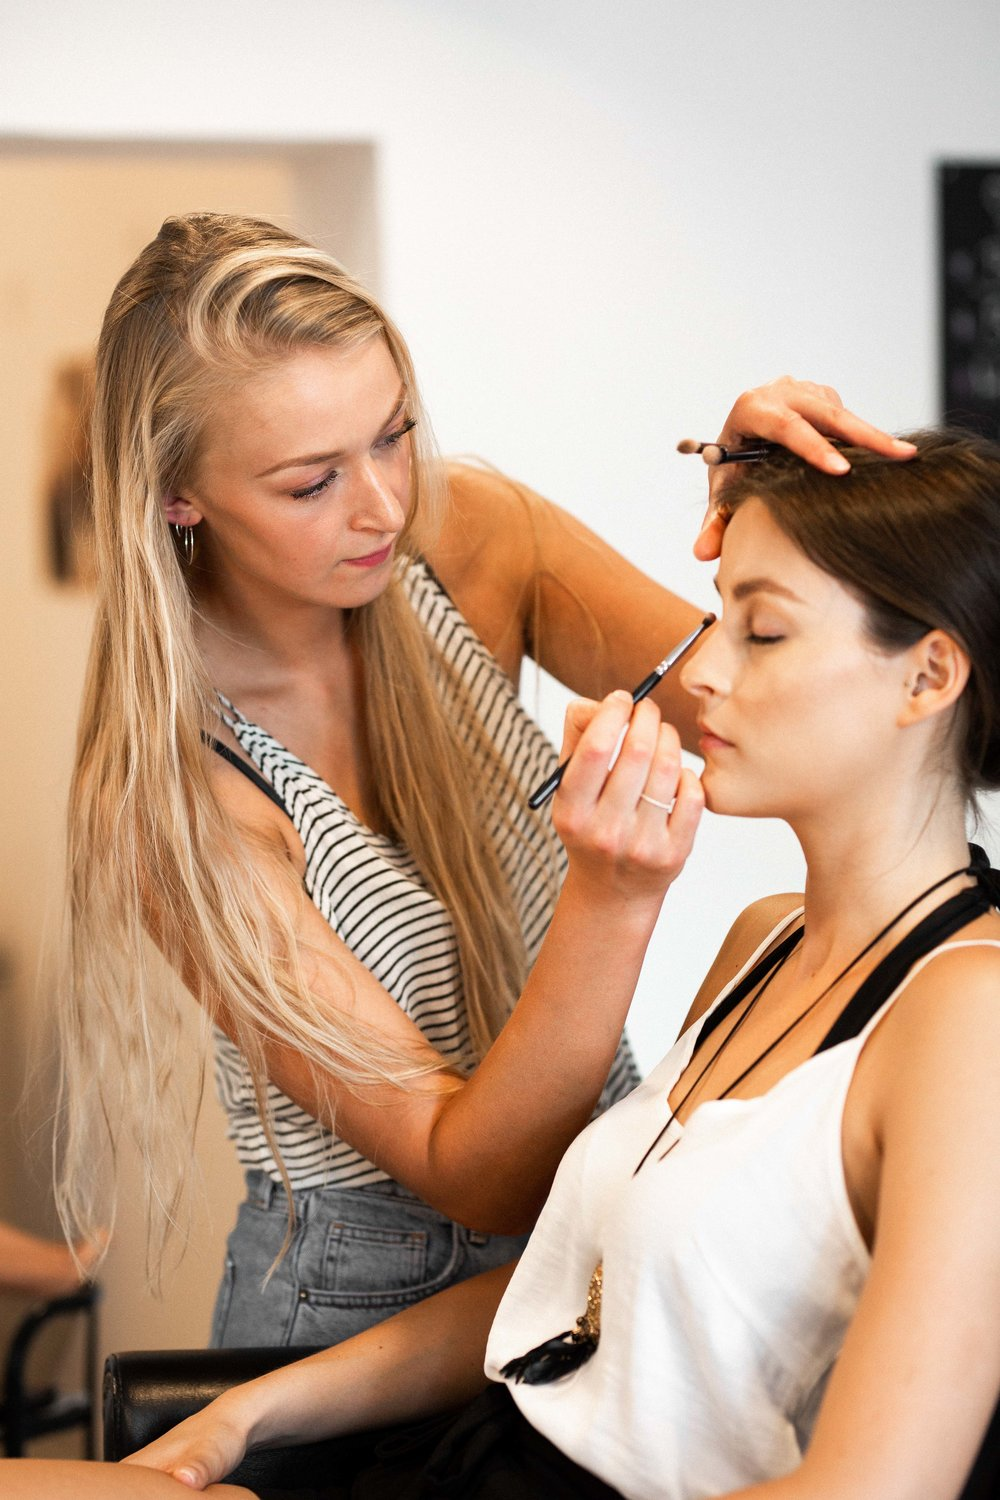 Hair und Make-up Artist